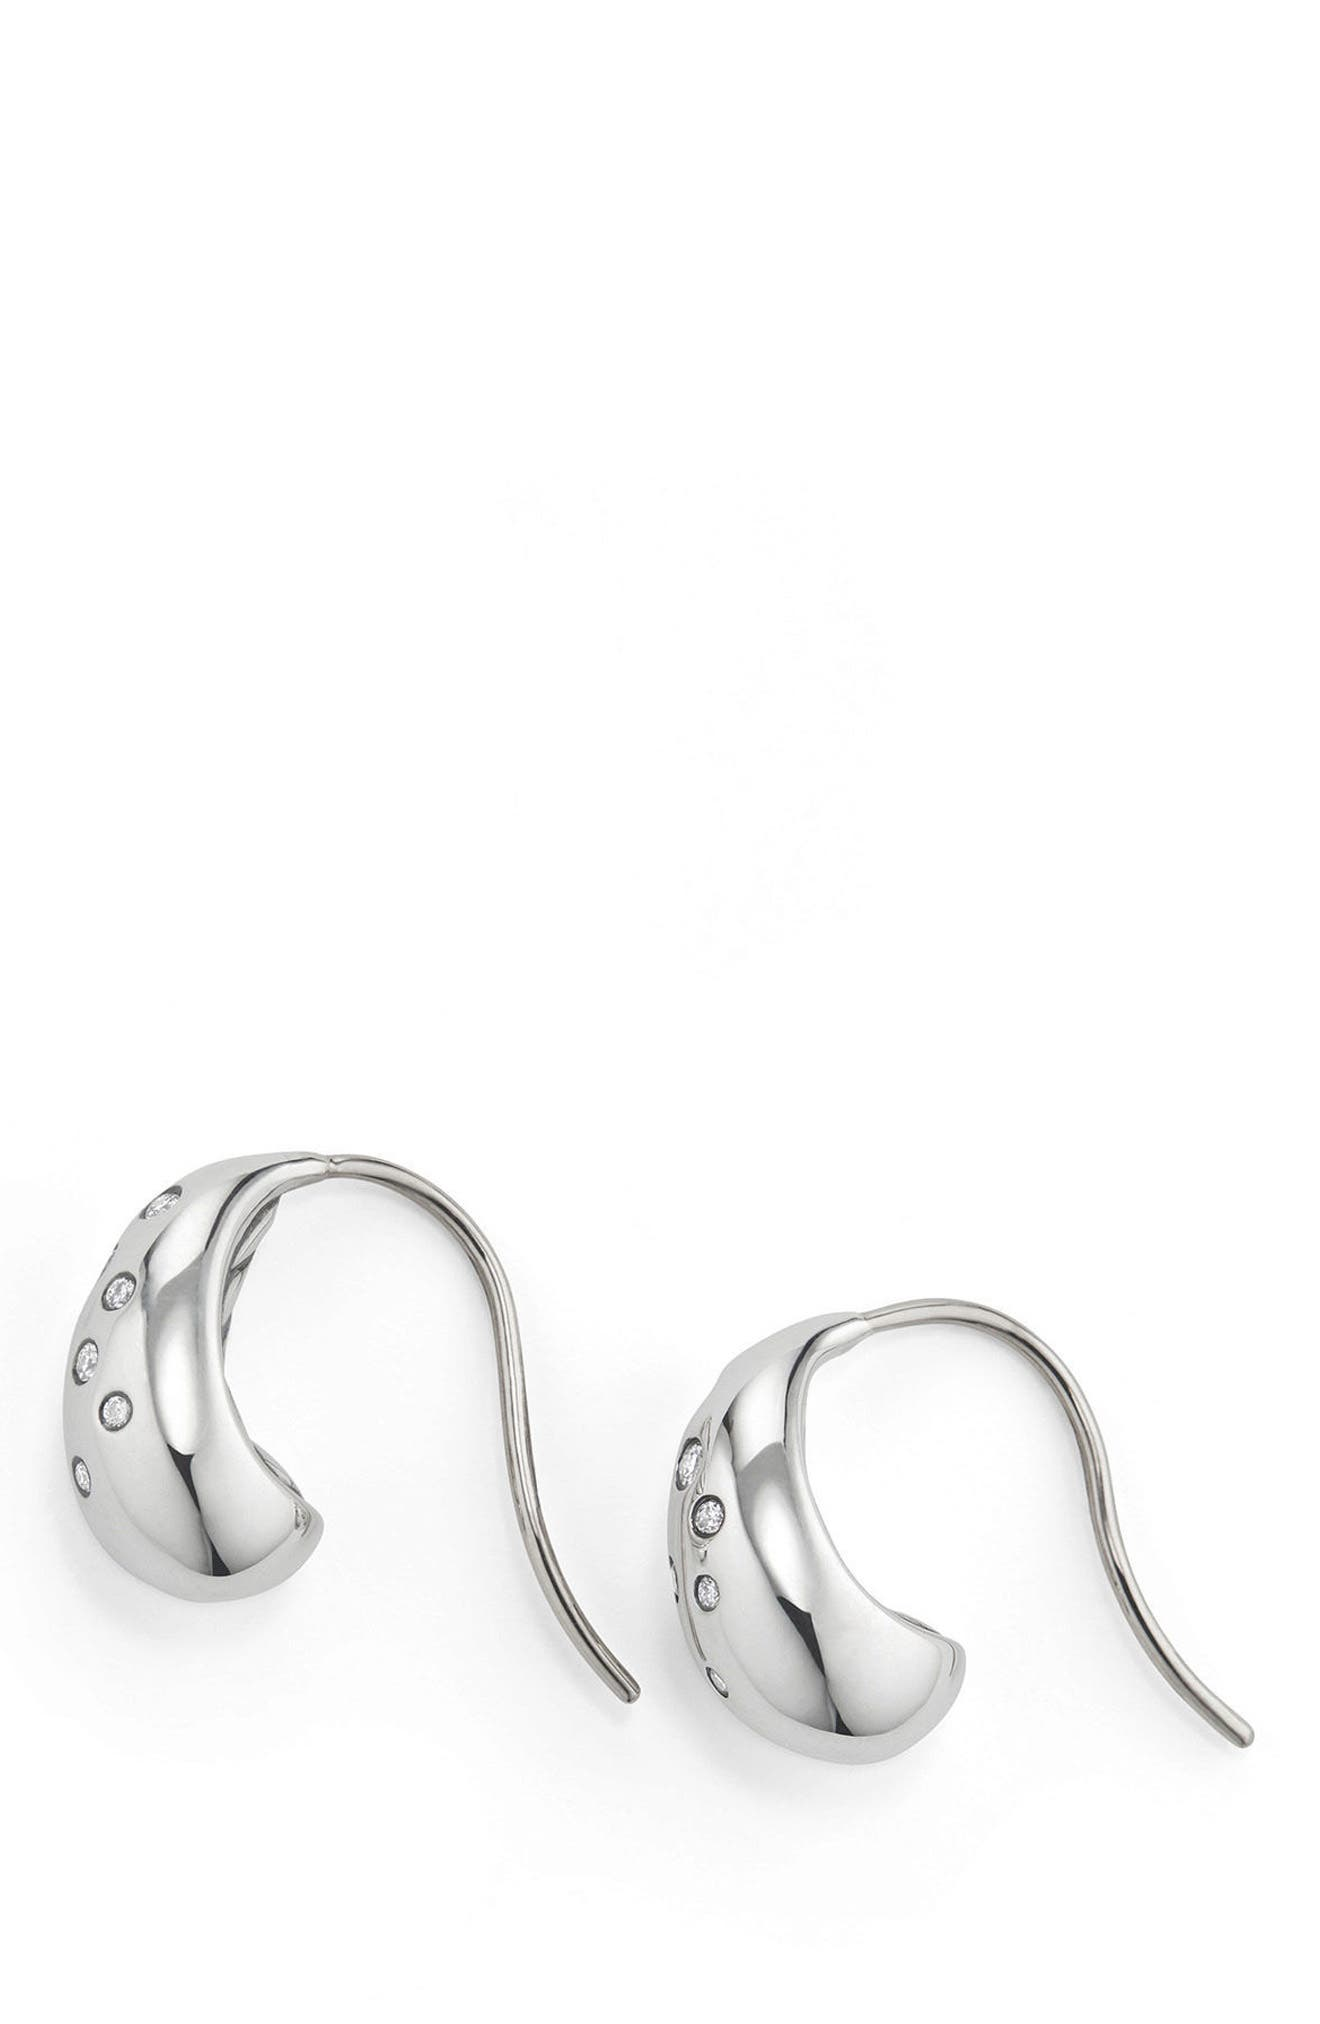 David Yurman Pure Form Earrings with Diamonds, 15mm